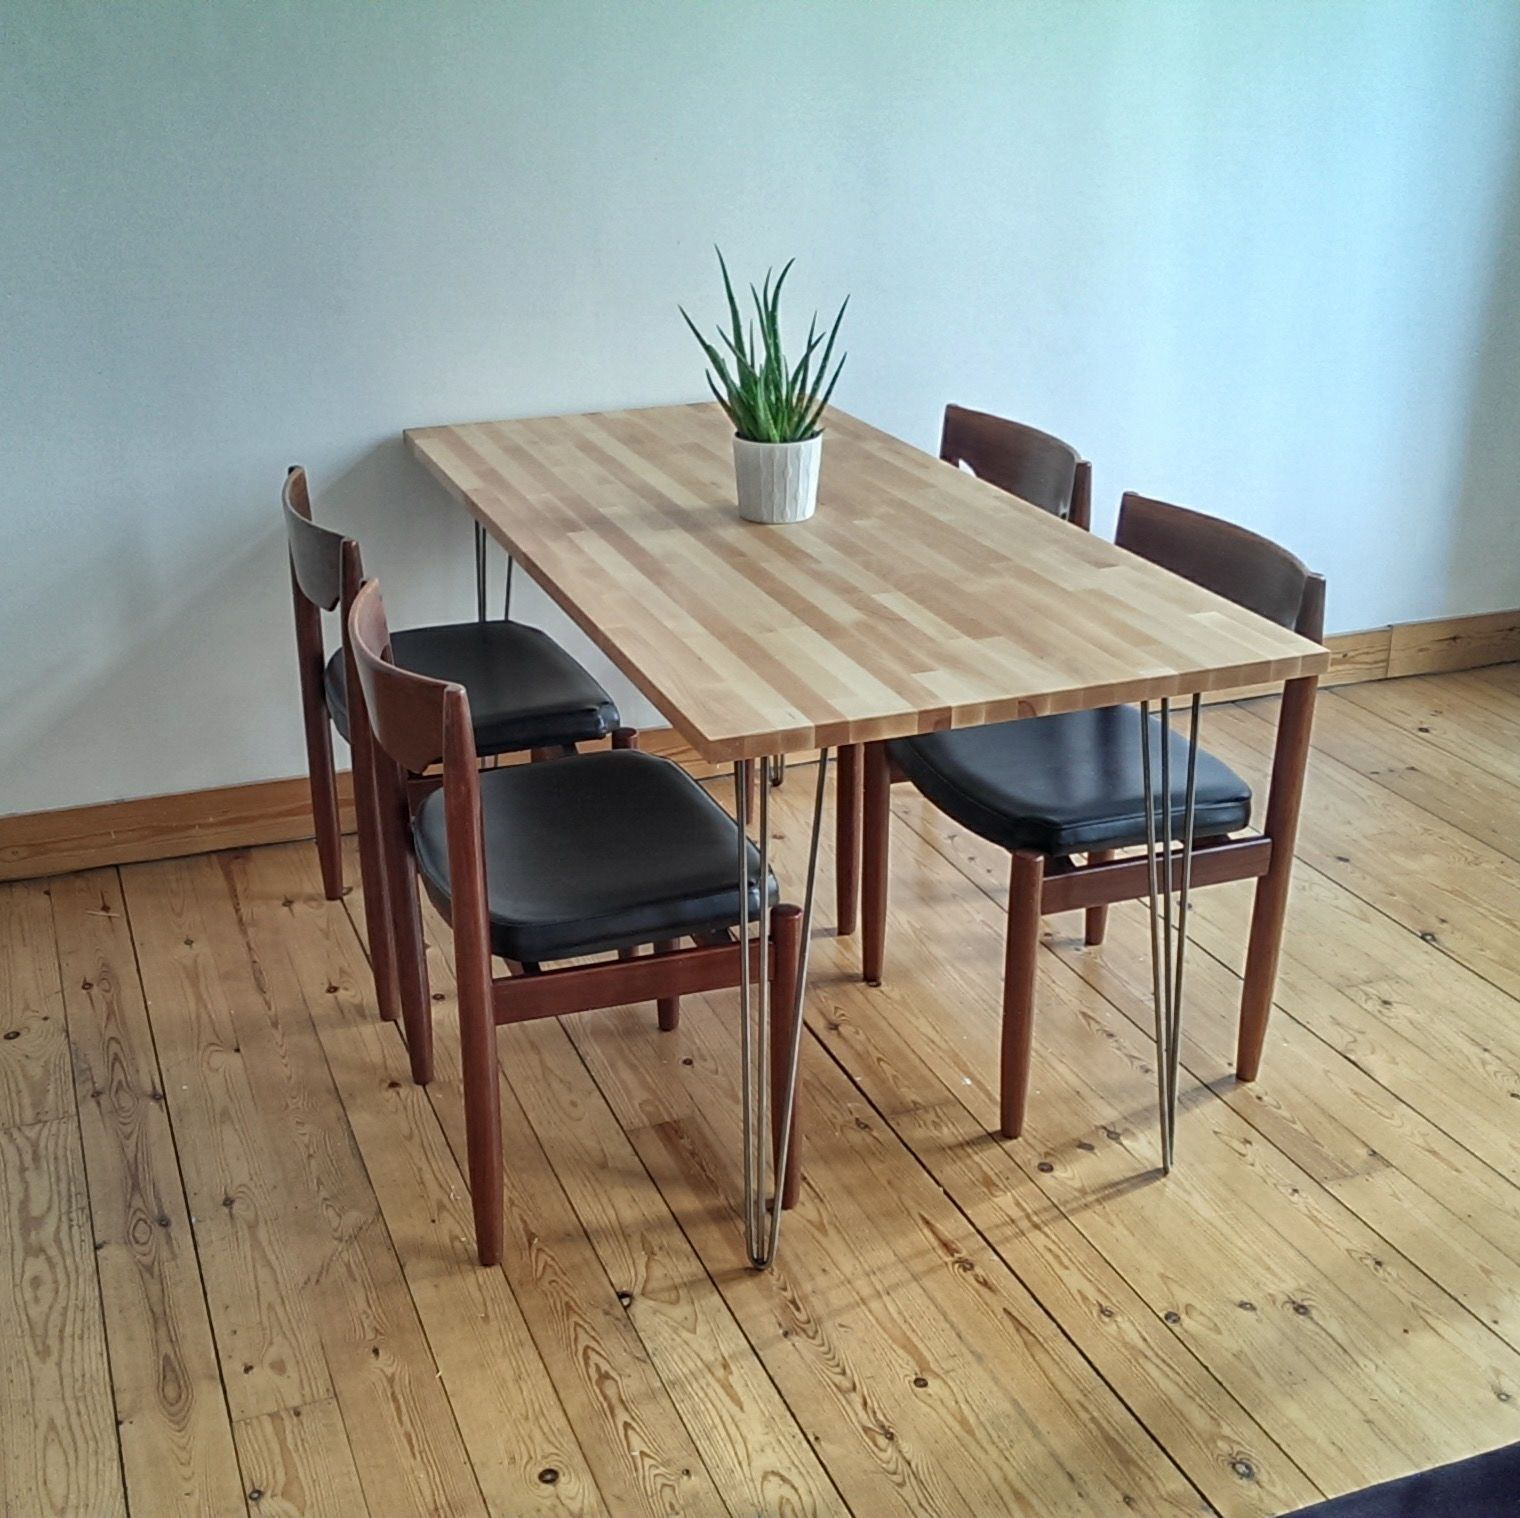 Superior Our Scandinavian Style Dining Table I Made With An IKEA Gerton Tabletop And  Hairpin Legs From